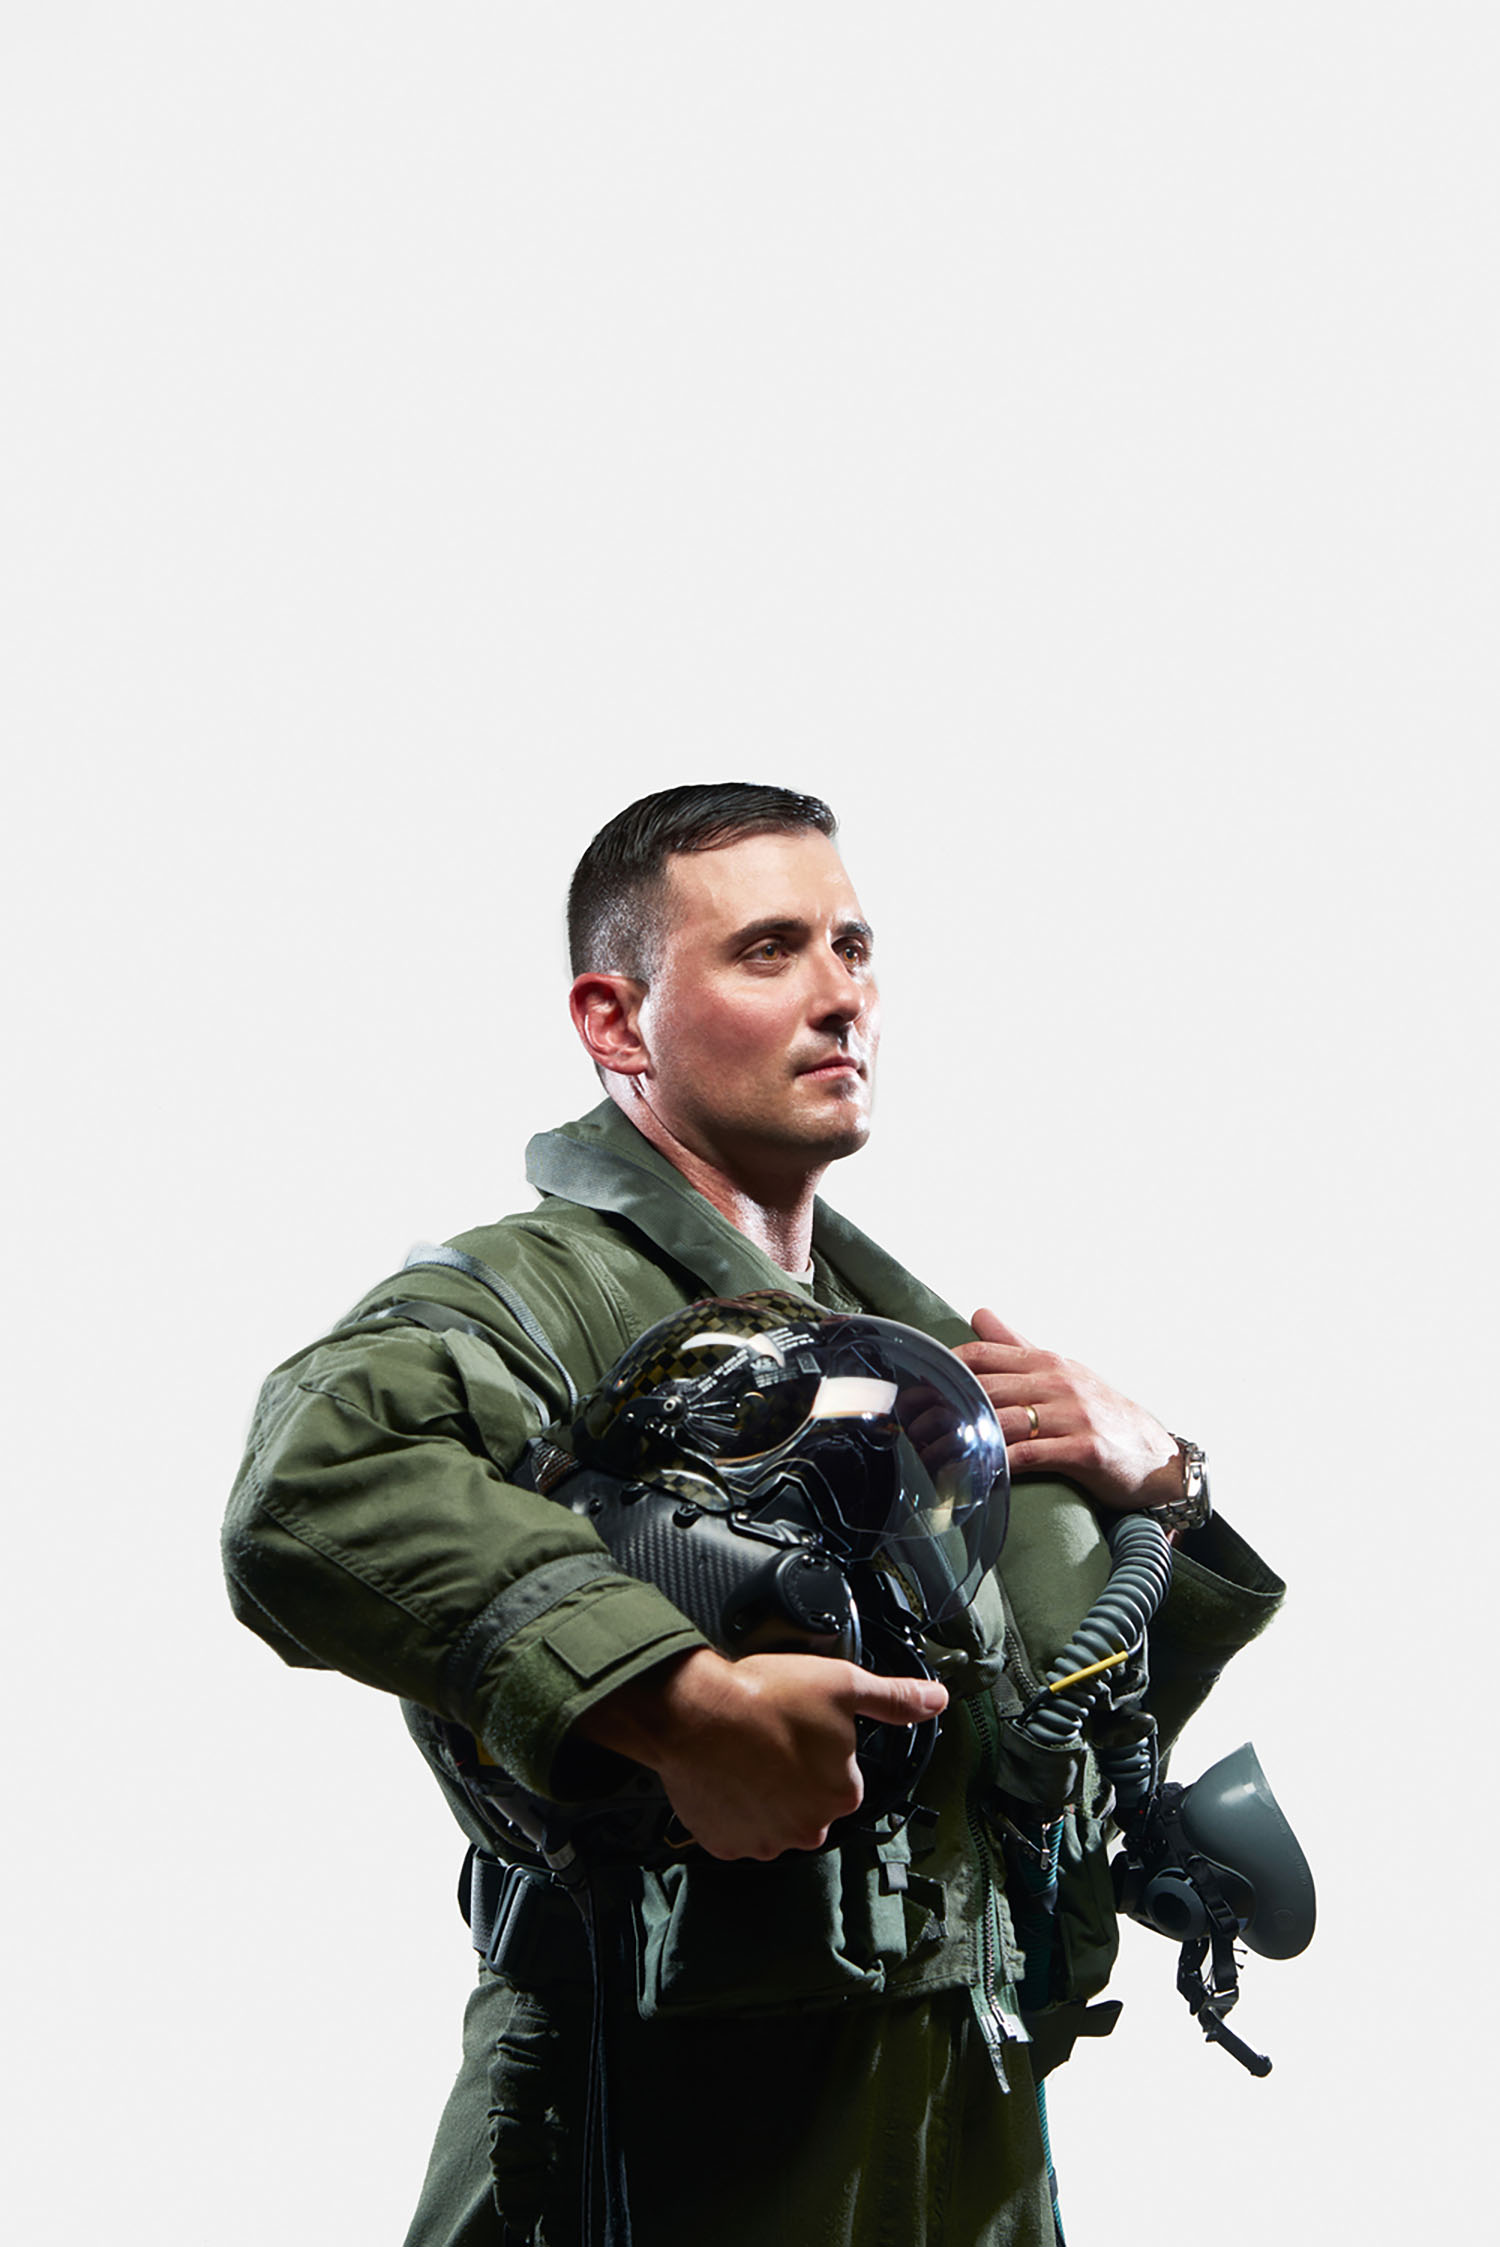 Joseph Stenger, F-35 Pilot, Luke Air Force Base, Arizona, 2015